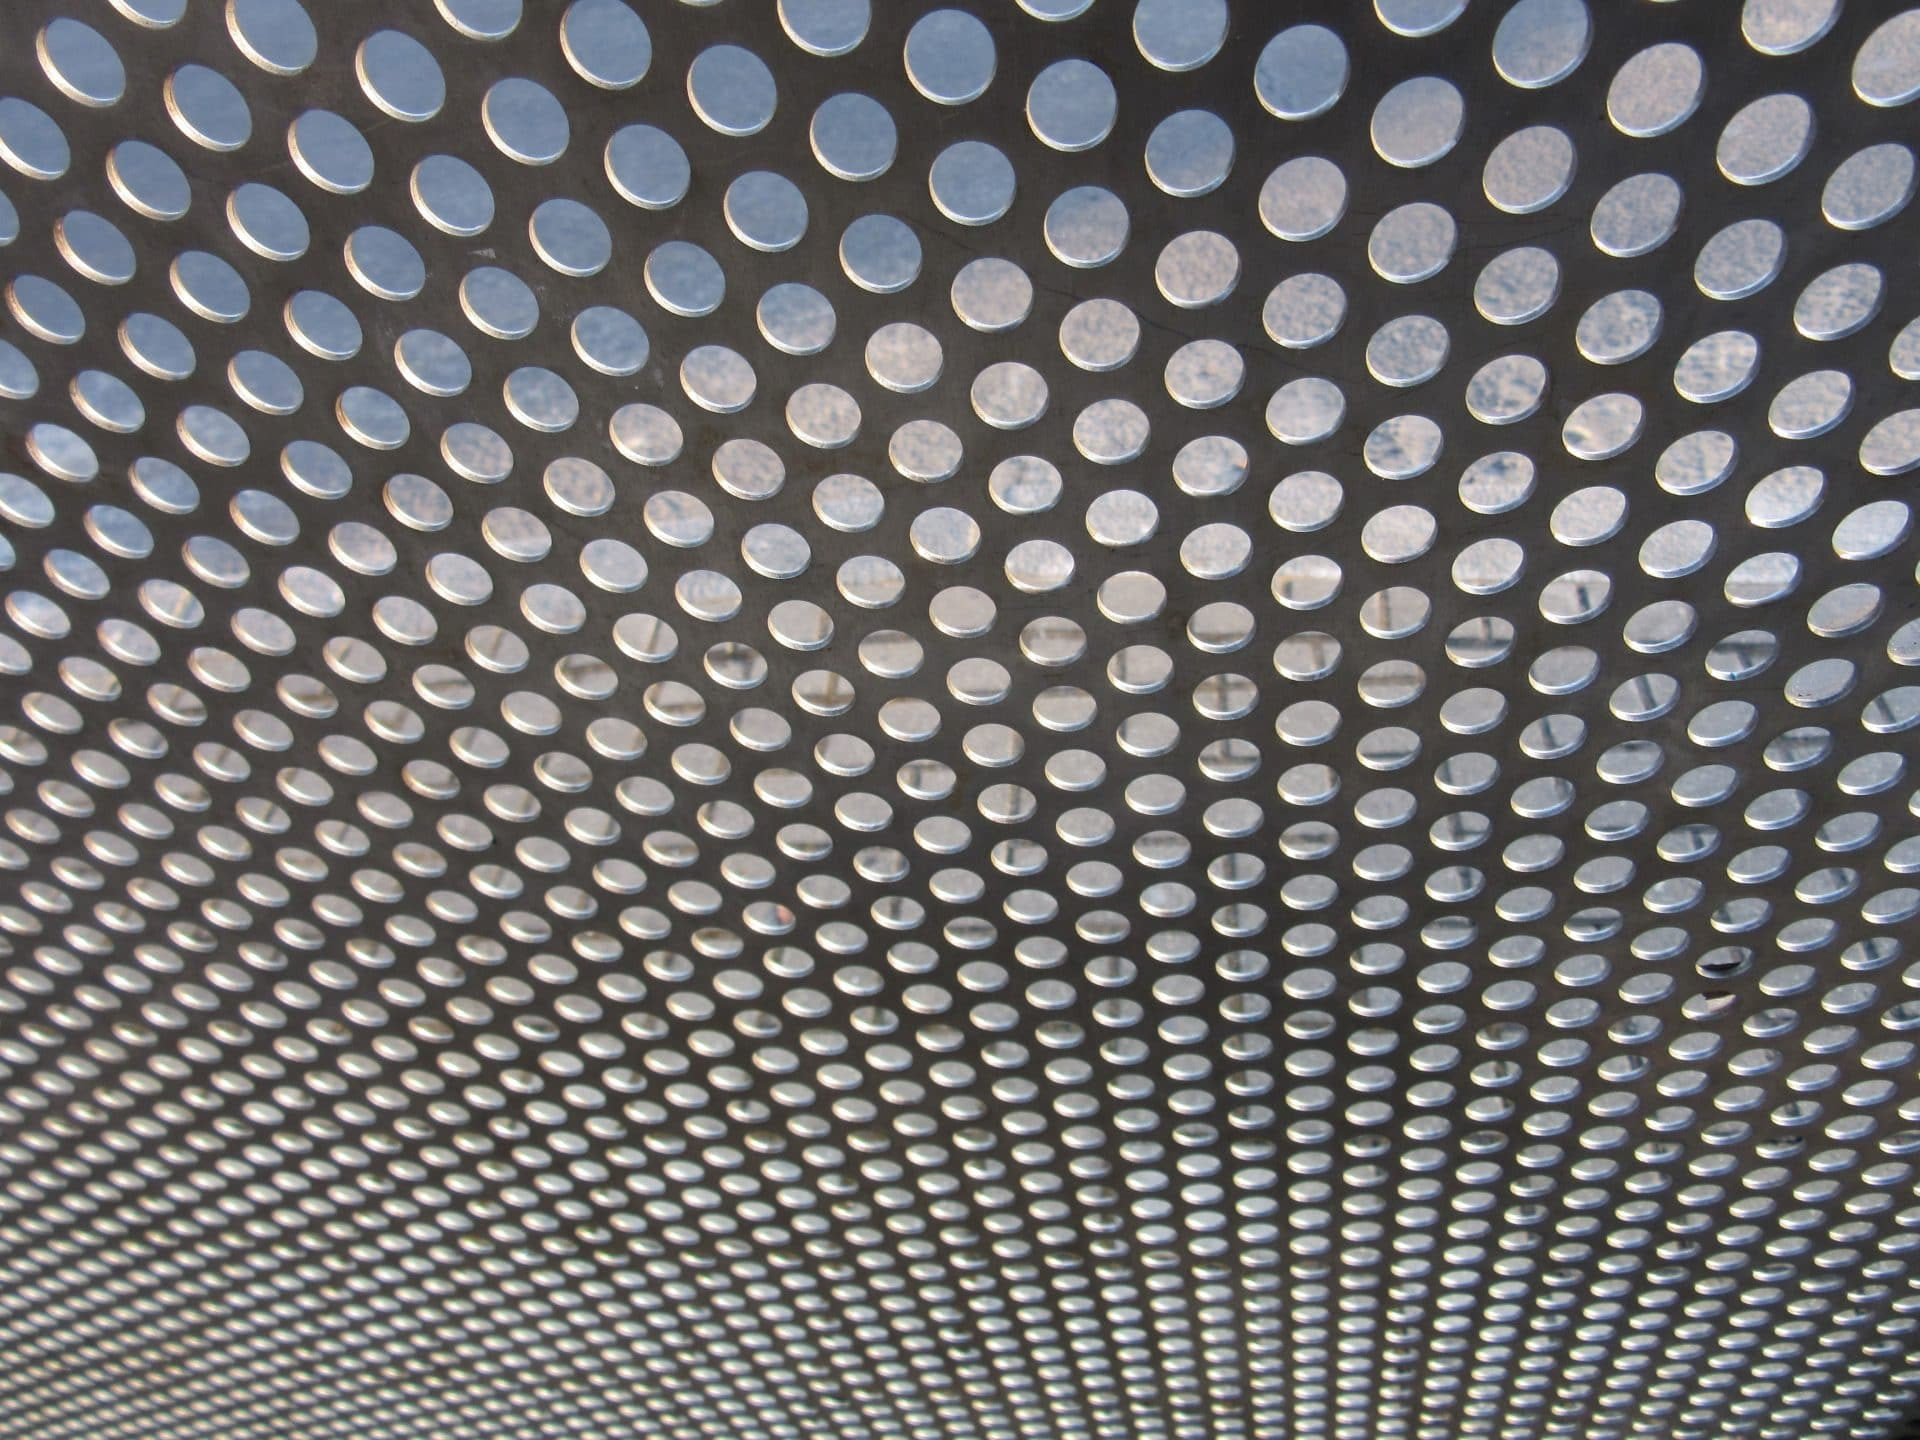 branko perforating, perforated materials, perforated metal supplier